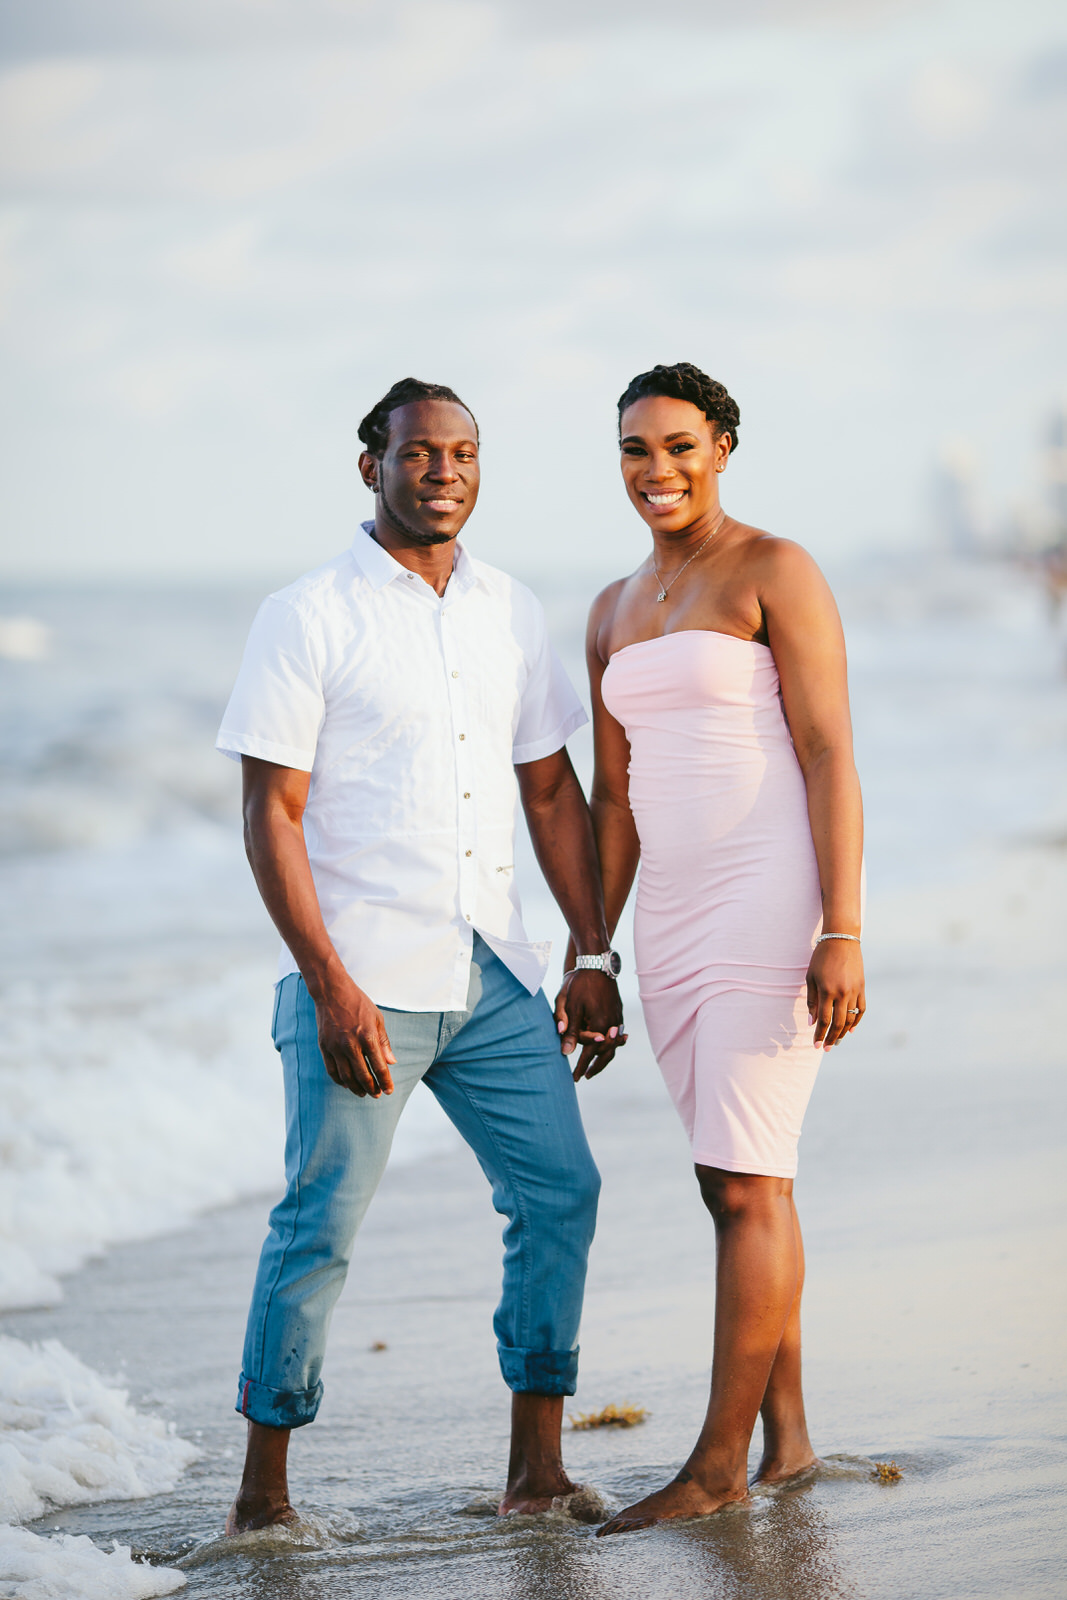 beachy-engagement-portraits-fort-lauderale-tiny-house-photo-wedding-photographer-28.jpg